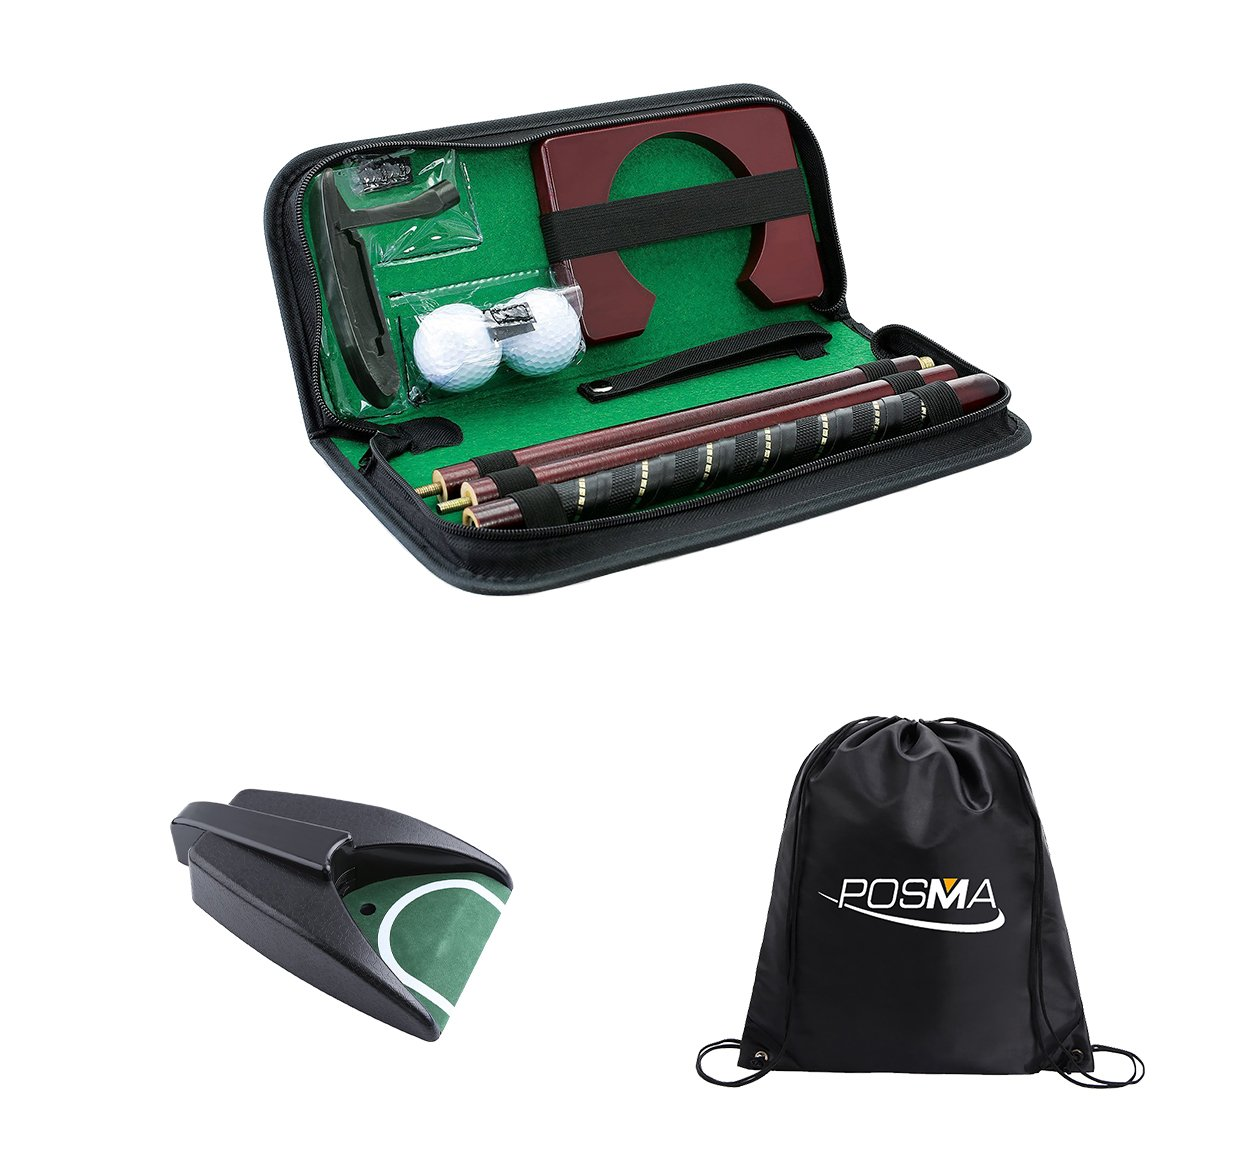 POSMA PG020AD Golf Putter kit set with auto reverse electric putting hole in a golfers carry bag, putter club, 2pcs golf balls - perfect for Indoor outdoor golf putting training practice aid